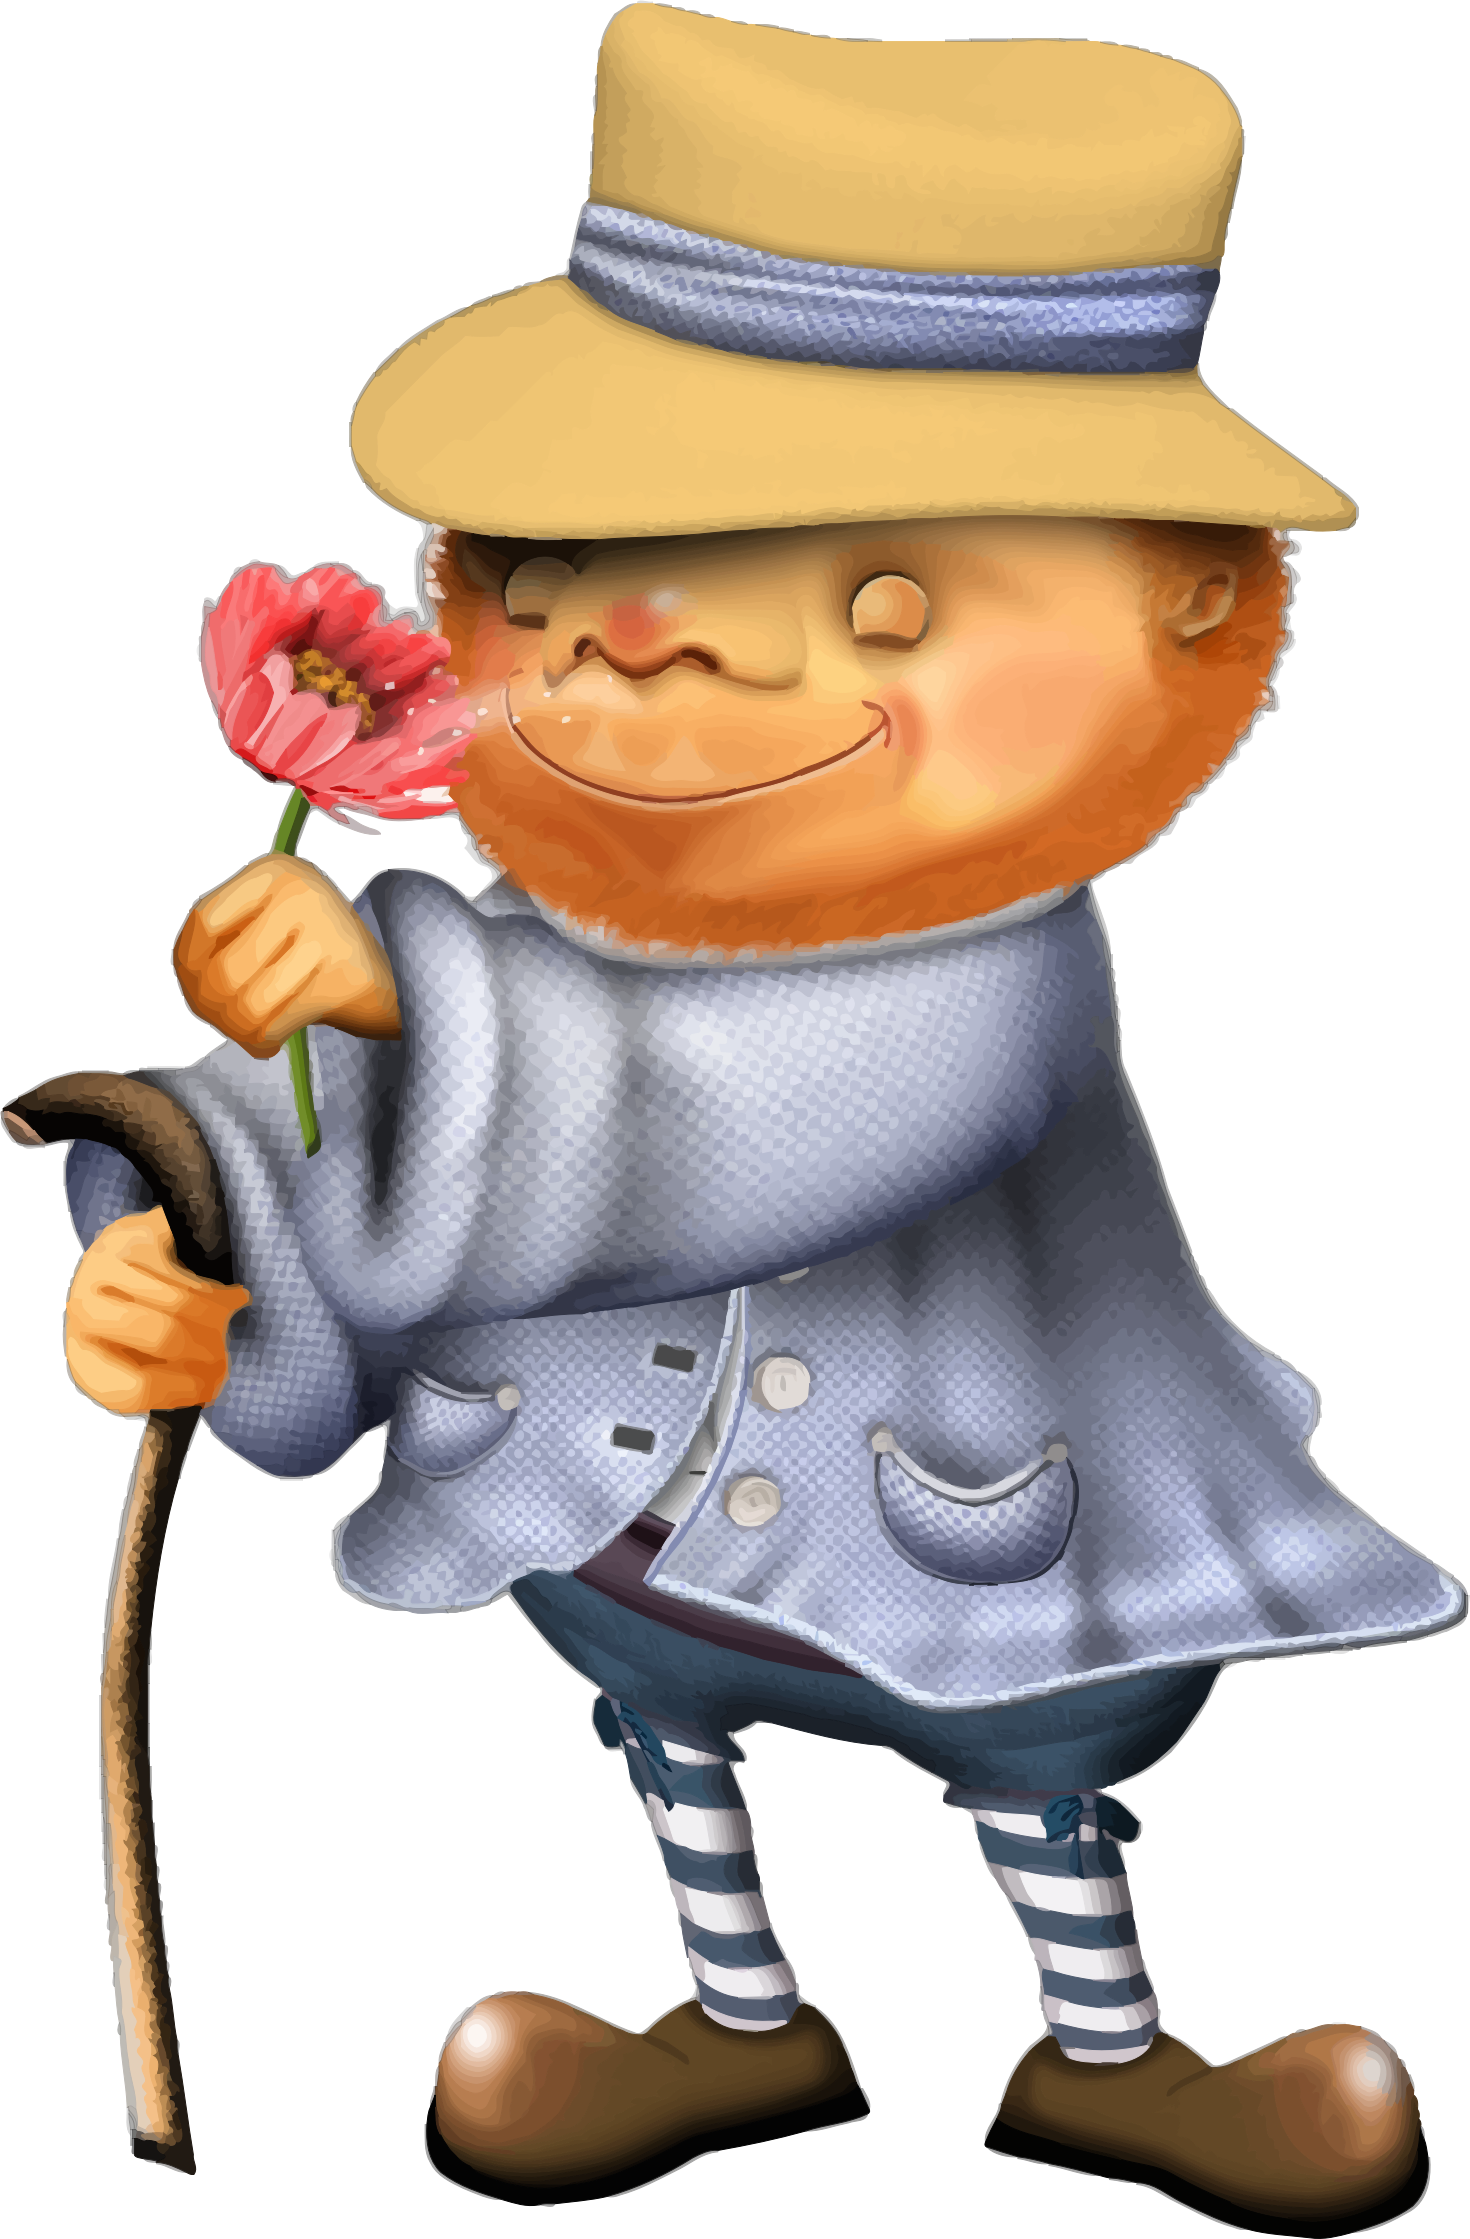 Man Sniffing Flower by GDJ